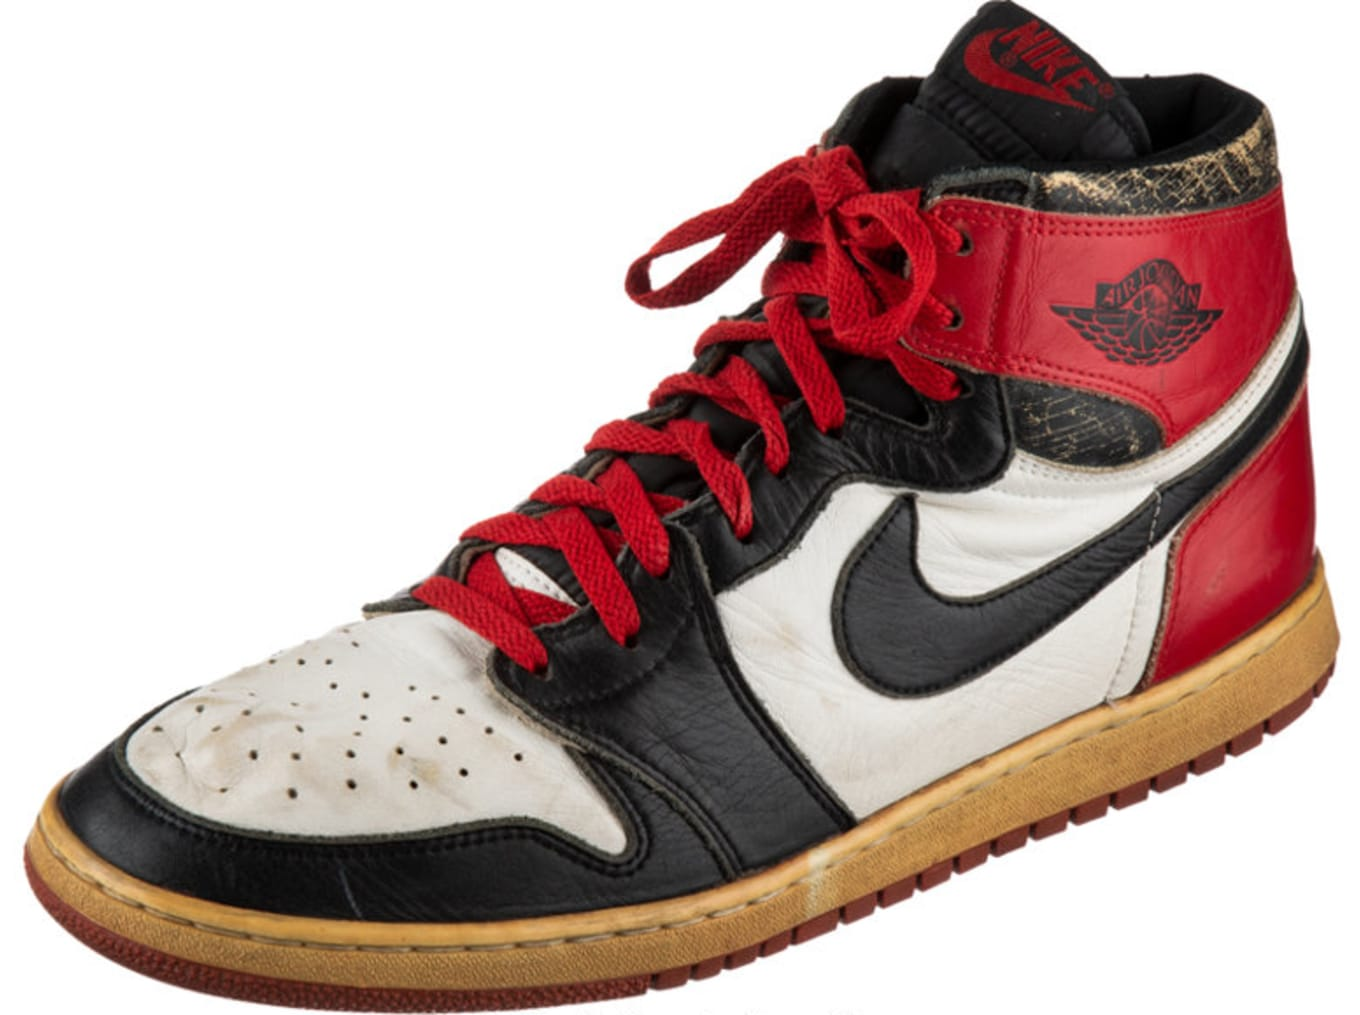 ba957749013e Your Chance to Own One of Michael Jordan s Game-Worn Air Jordan 1s.